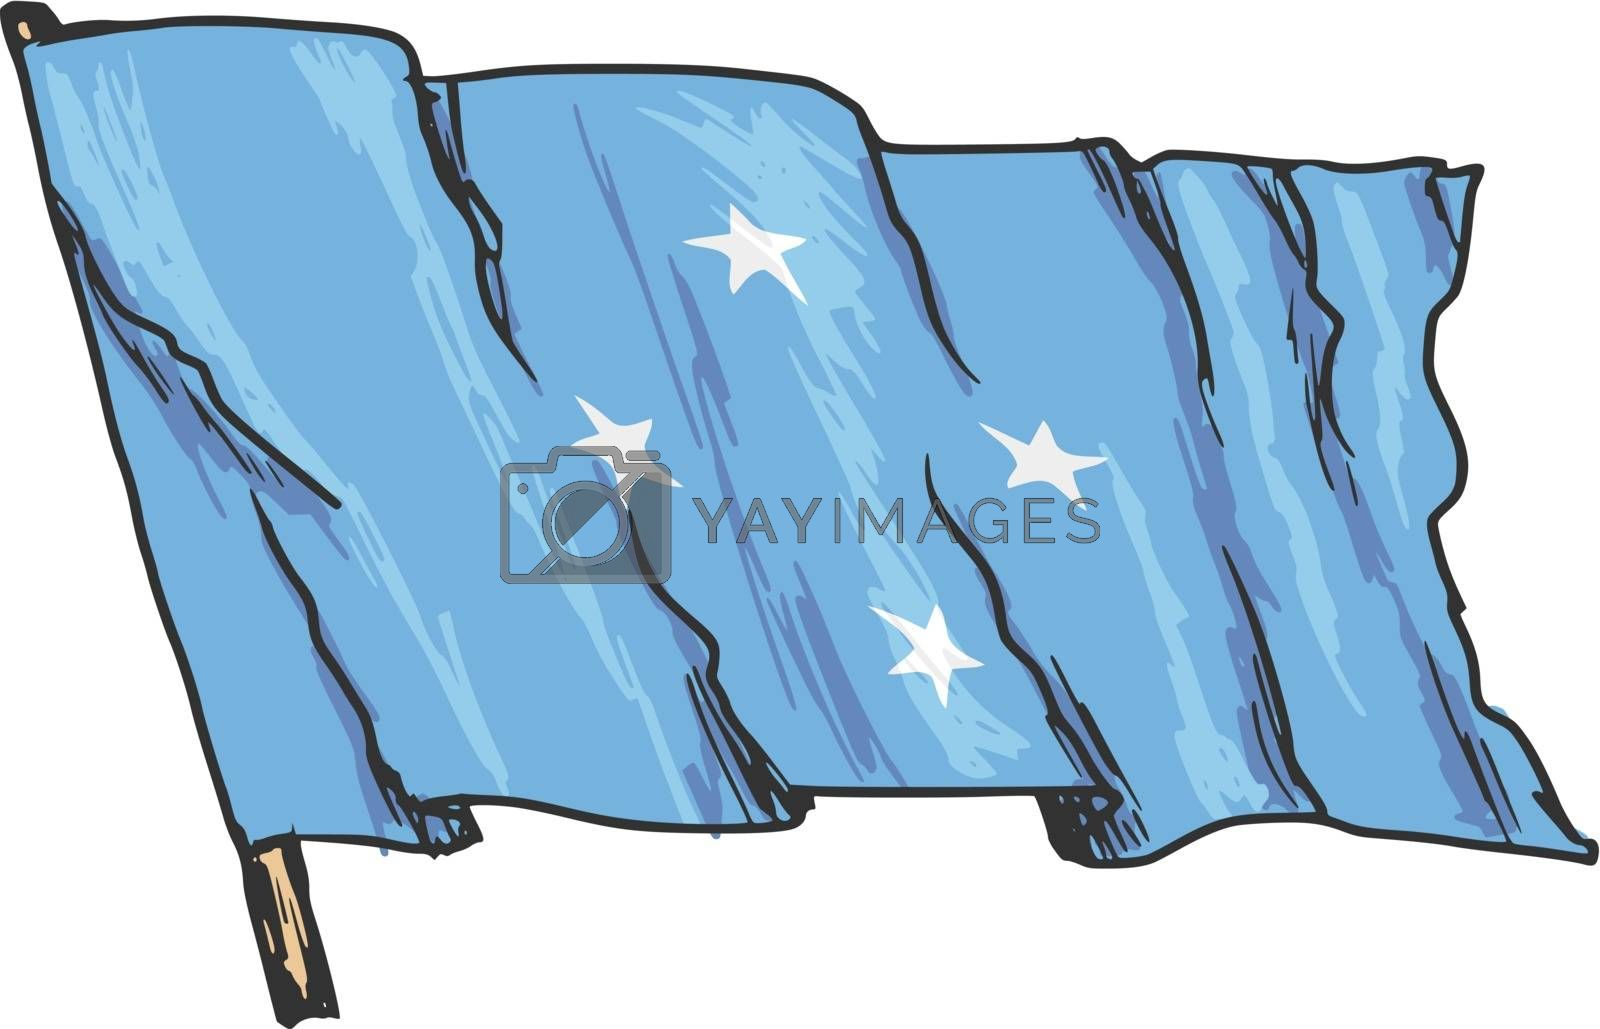 hand drawn, sketch, illustration of flag of Micronesia